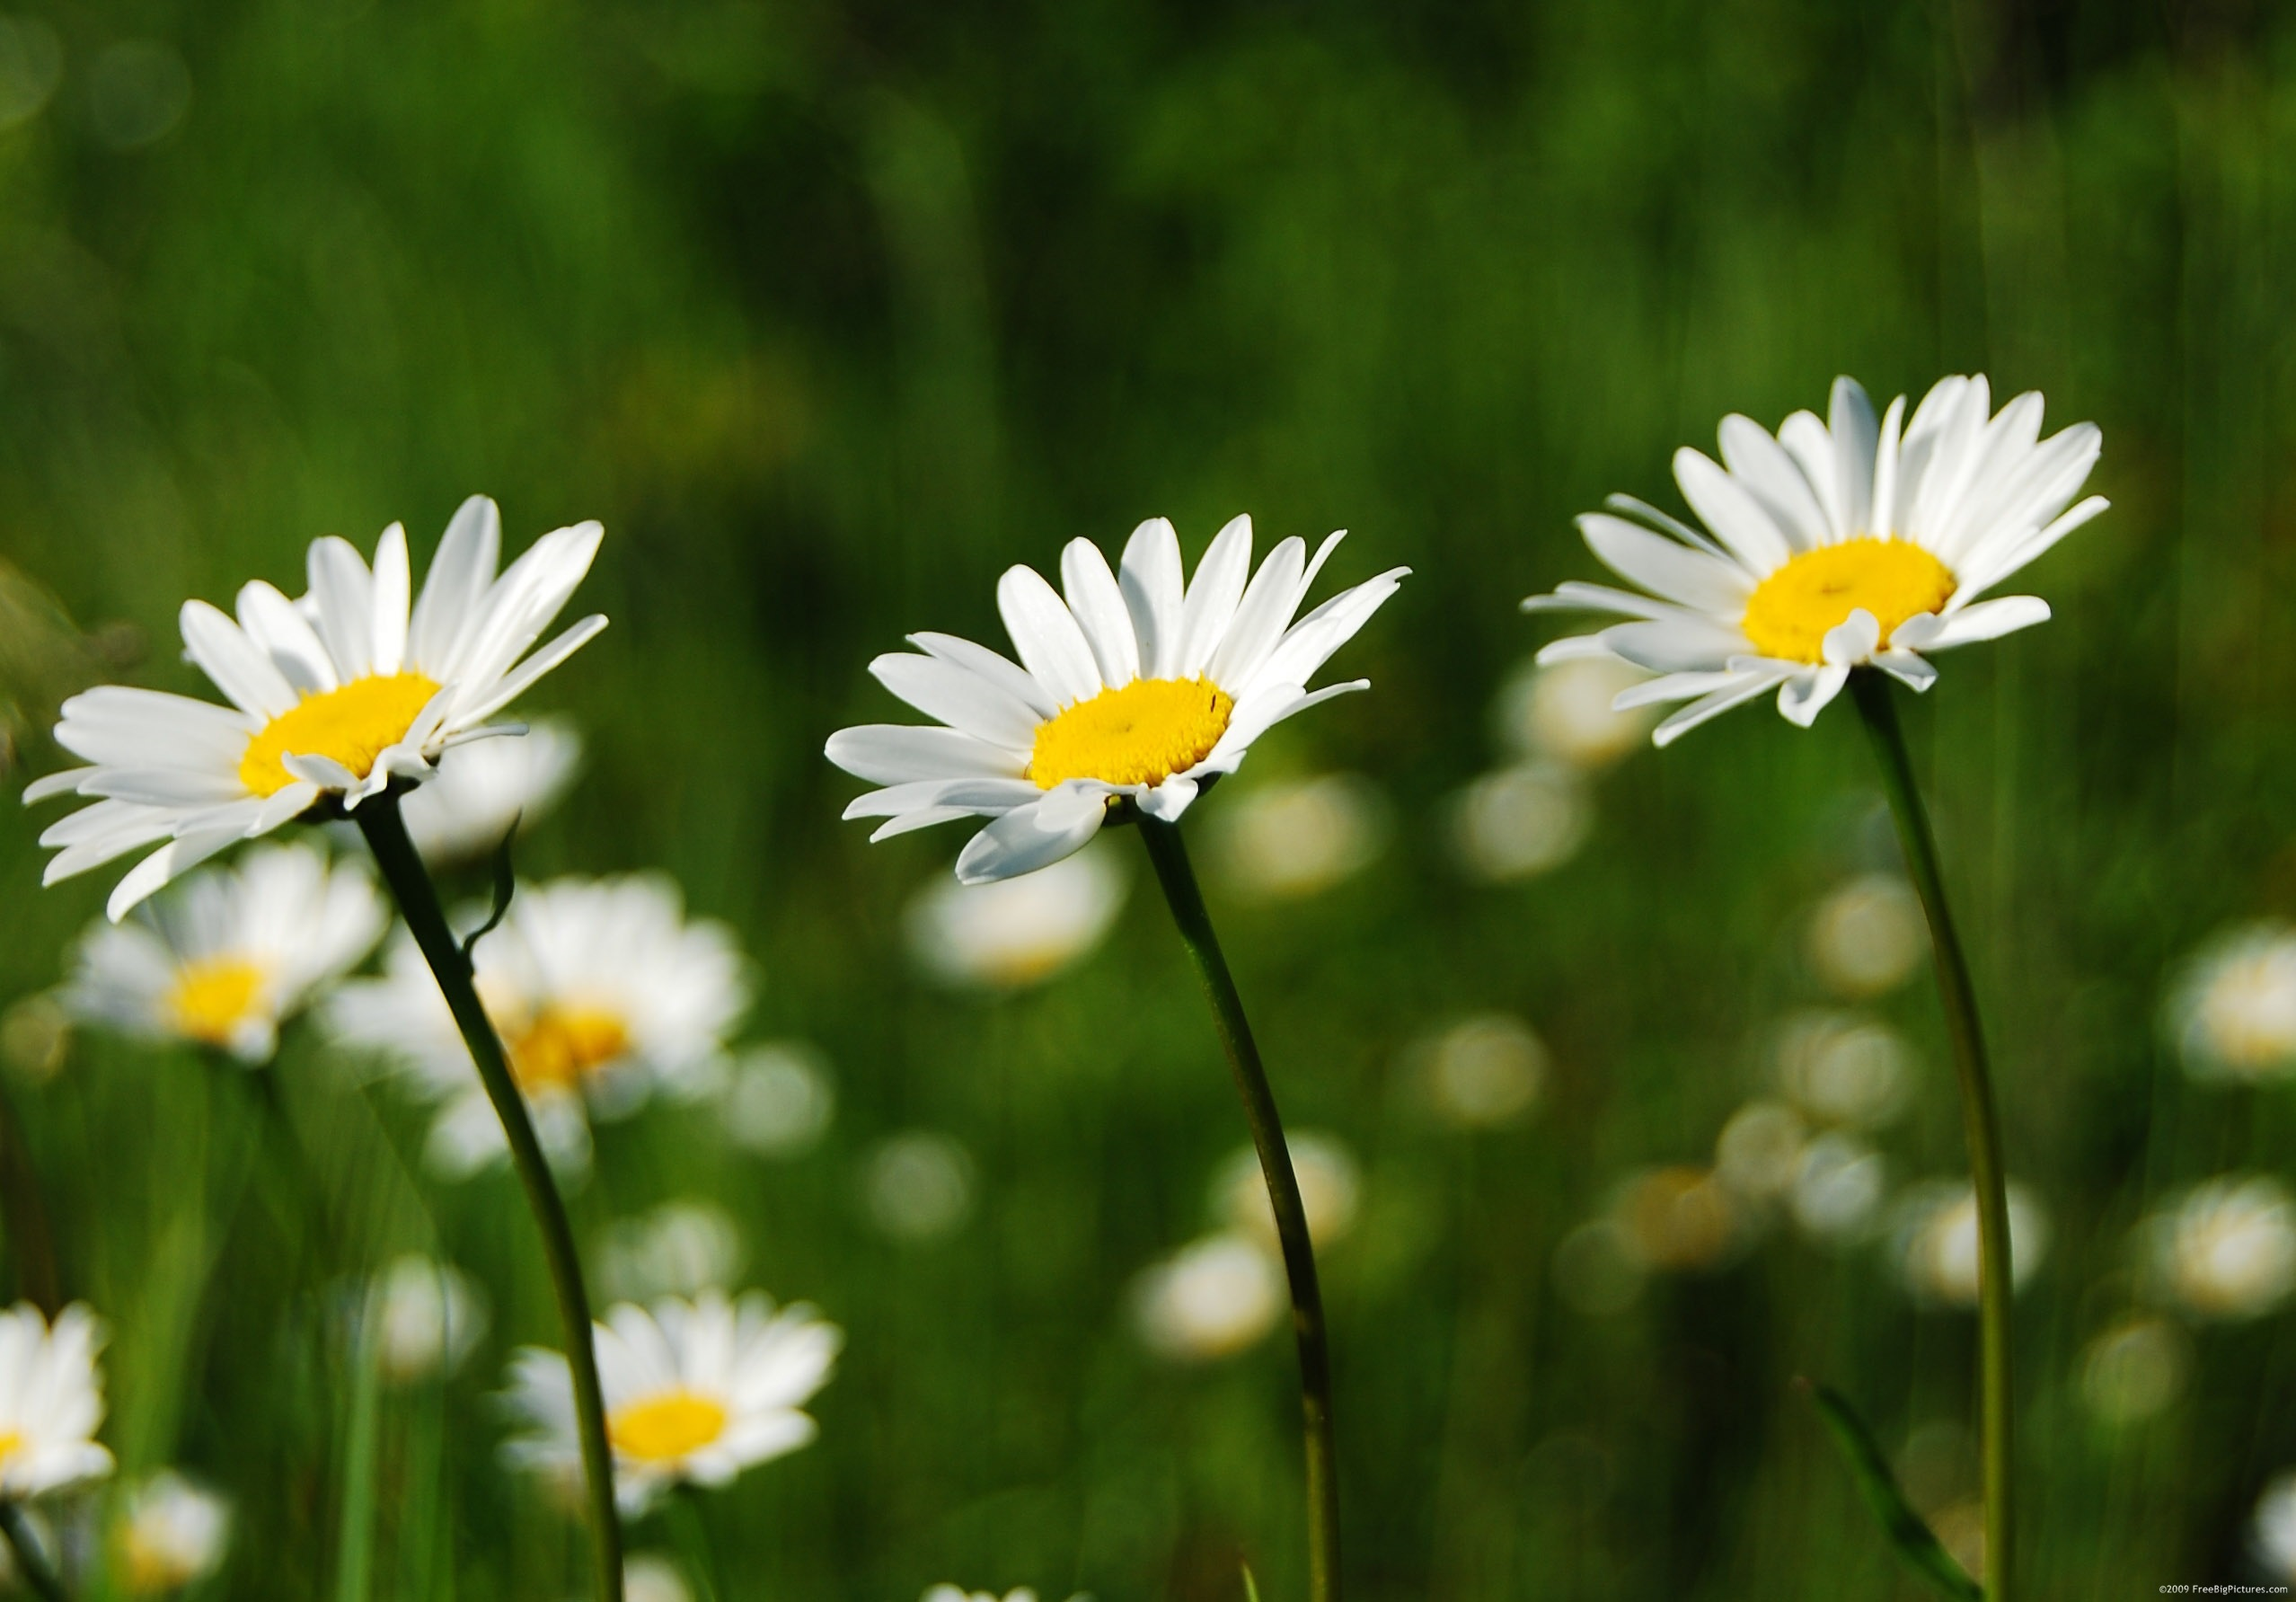 14 tips to Make Caring for Shasta Daisies a Breeze